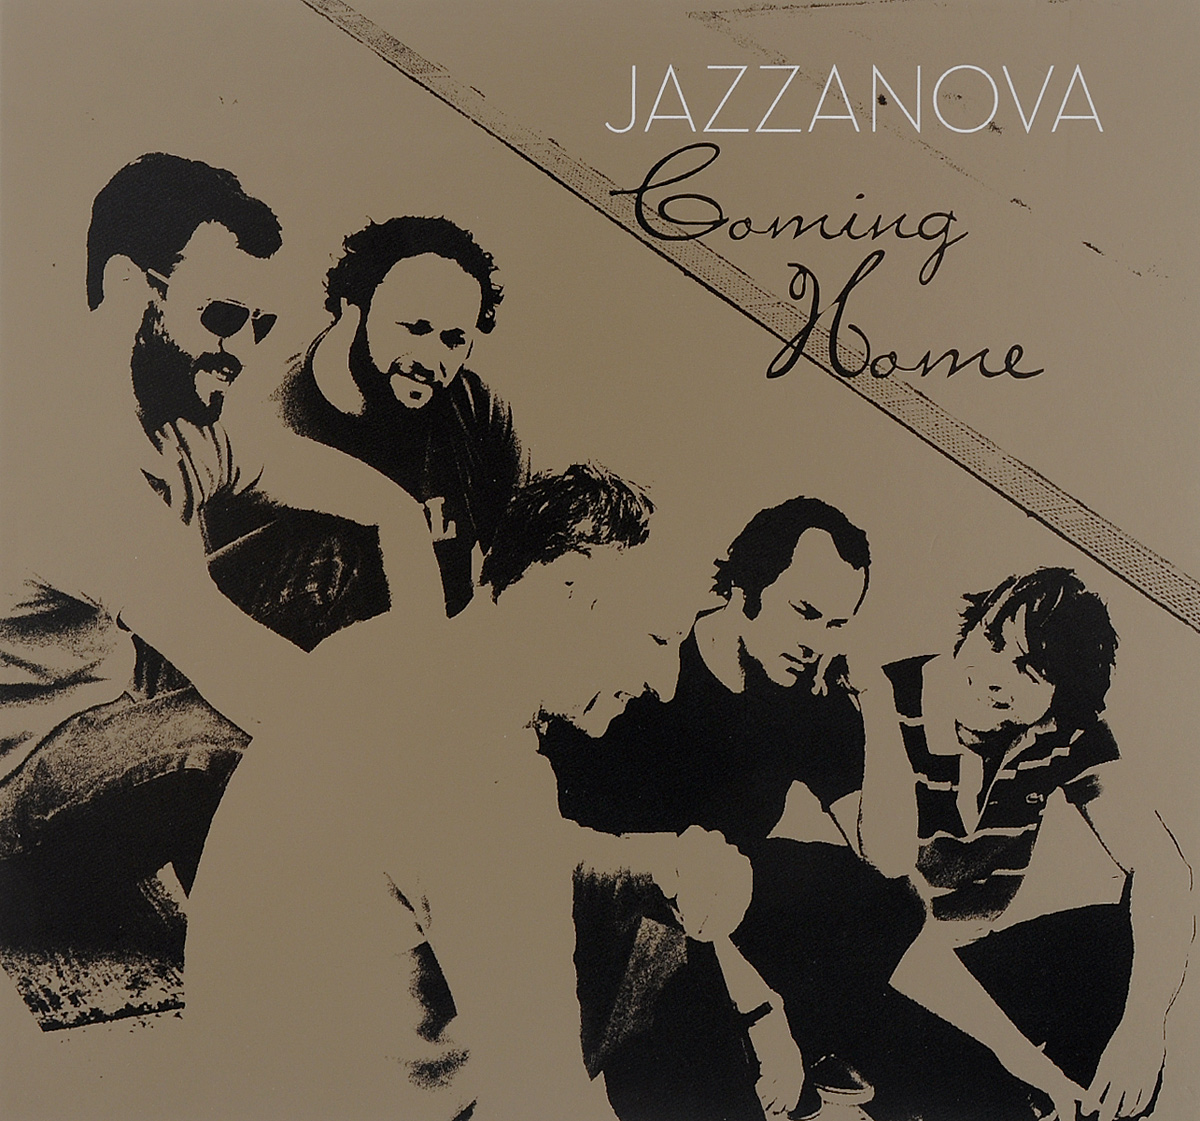 Jazzanova Coming Home By Jazzanova cd led zeppelin ii deluxe edition